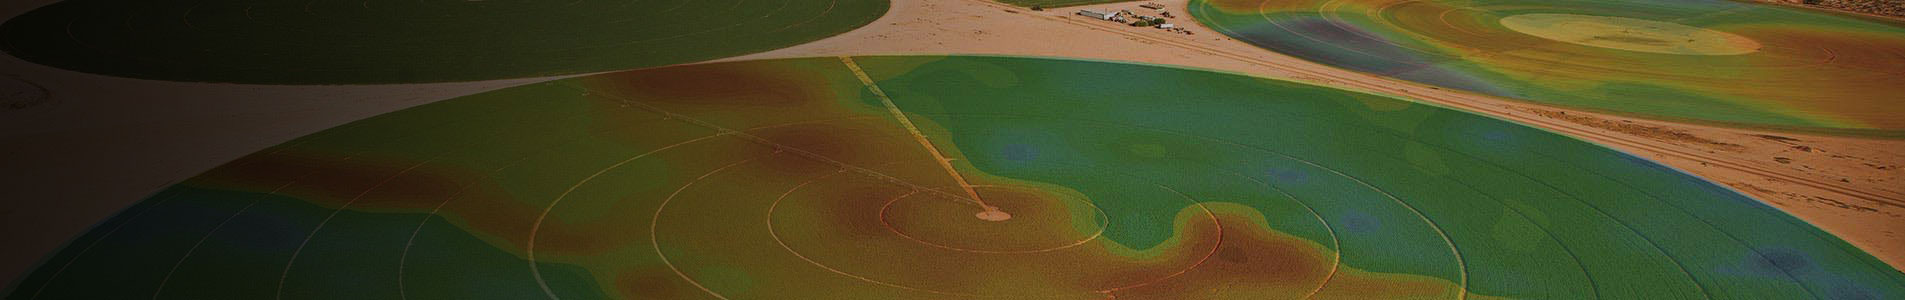 valley vri-is water application management solution